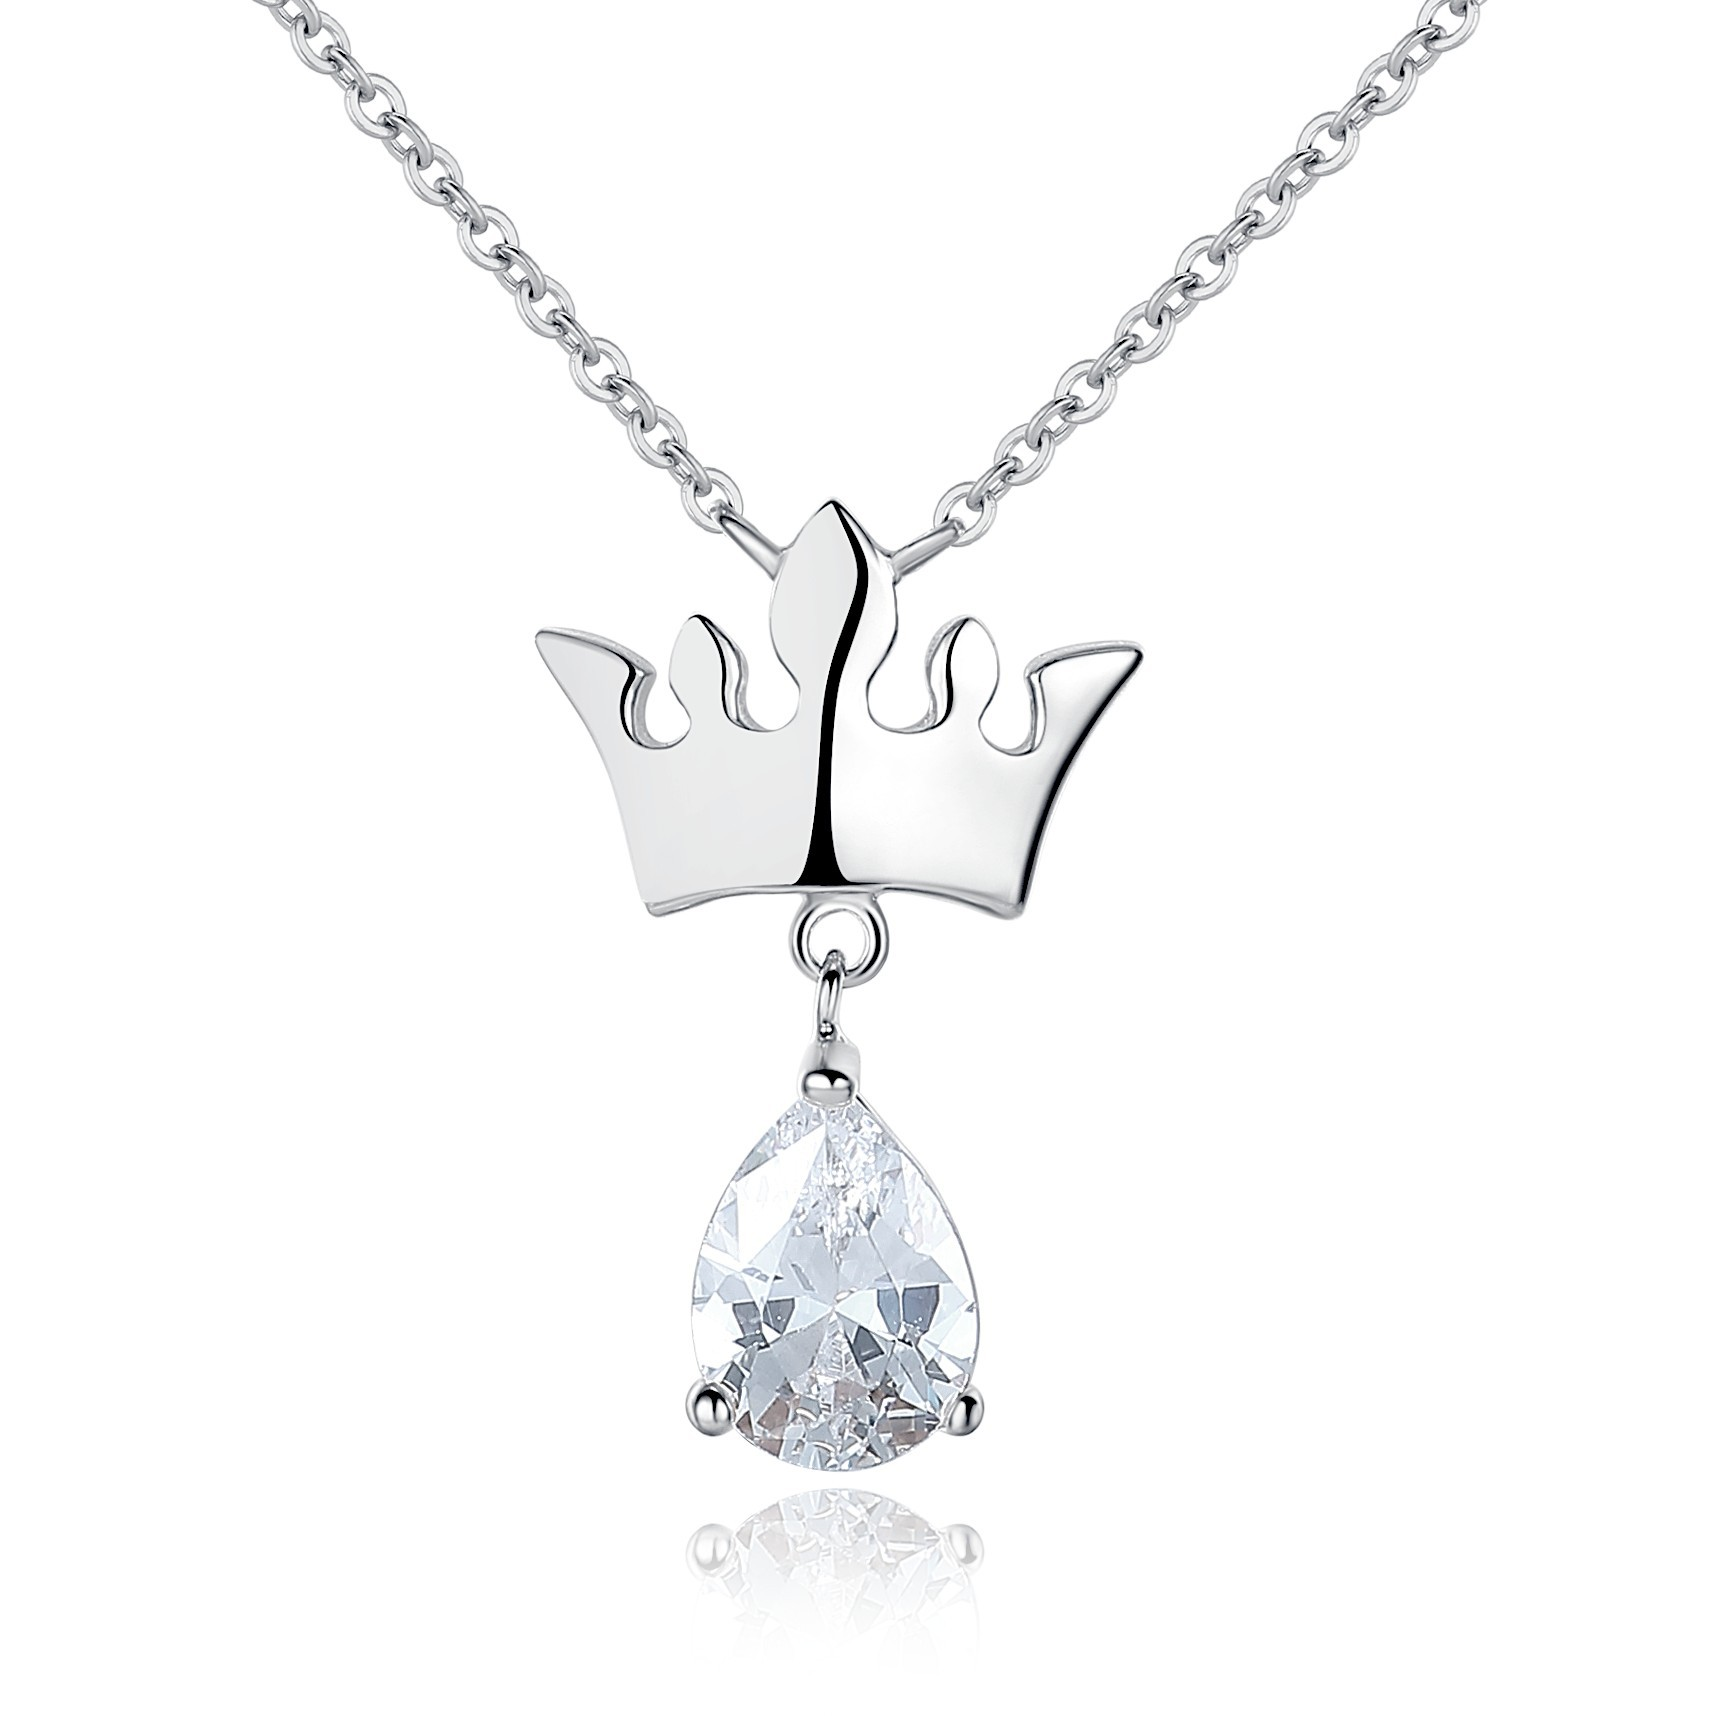 Womens sterling silver crown with dangling tear drop cubic zirconia womens sterling silver crown with dangling tear drop cubic zirconia pendant necklace jewelry aloadofball Images